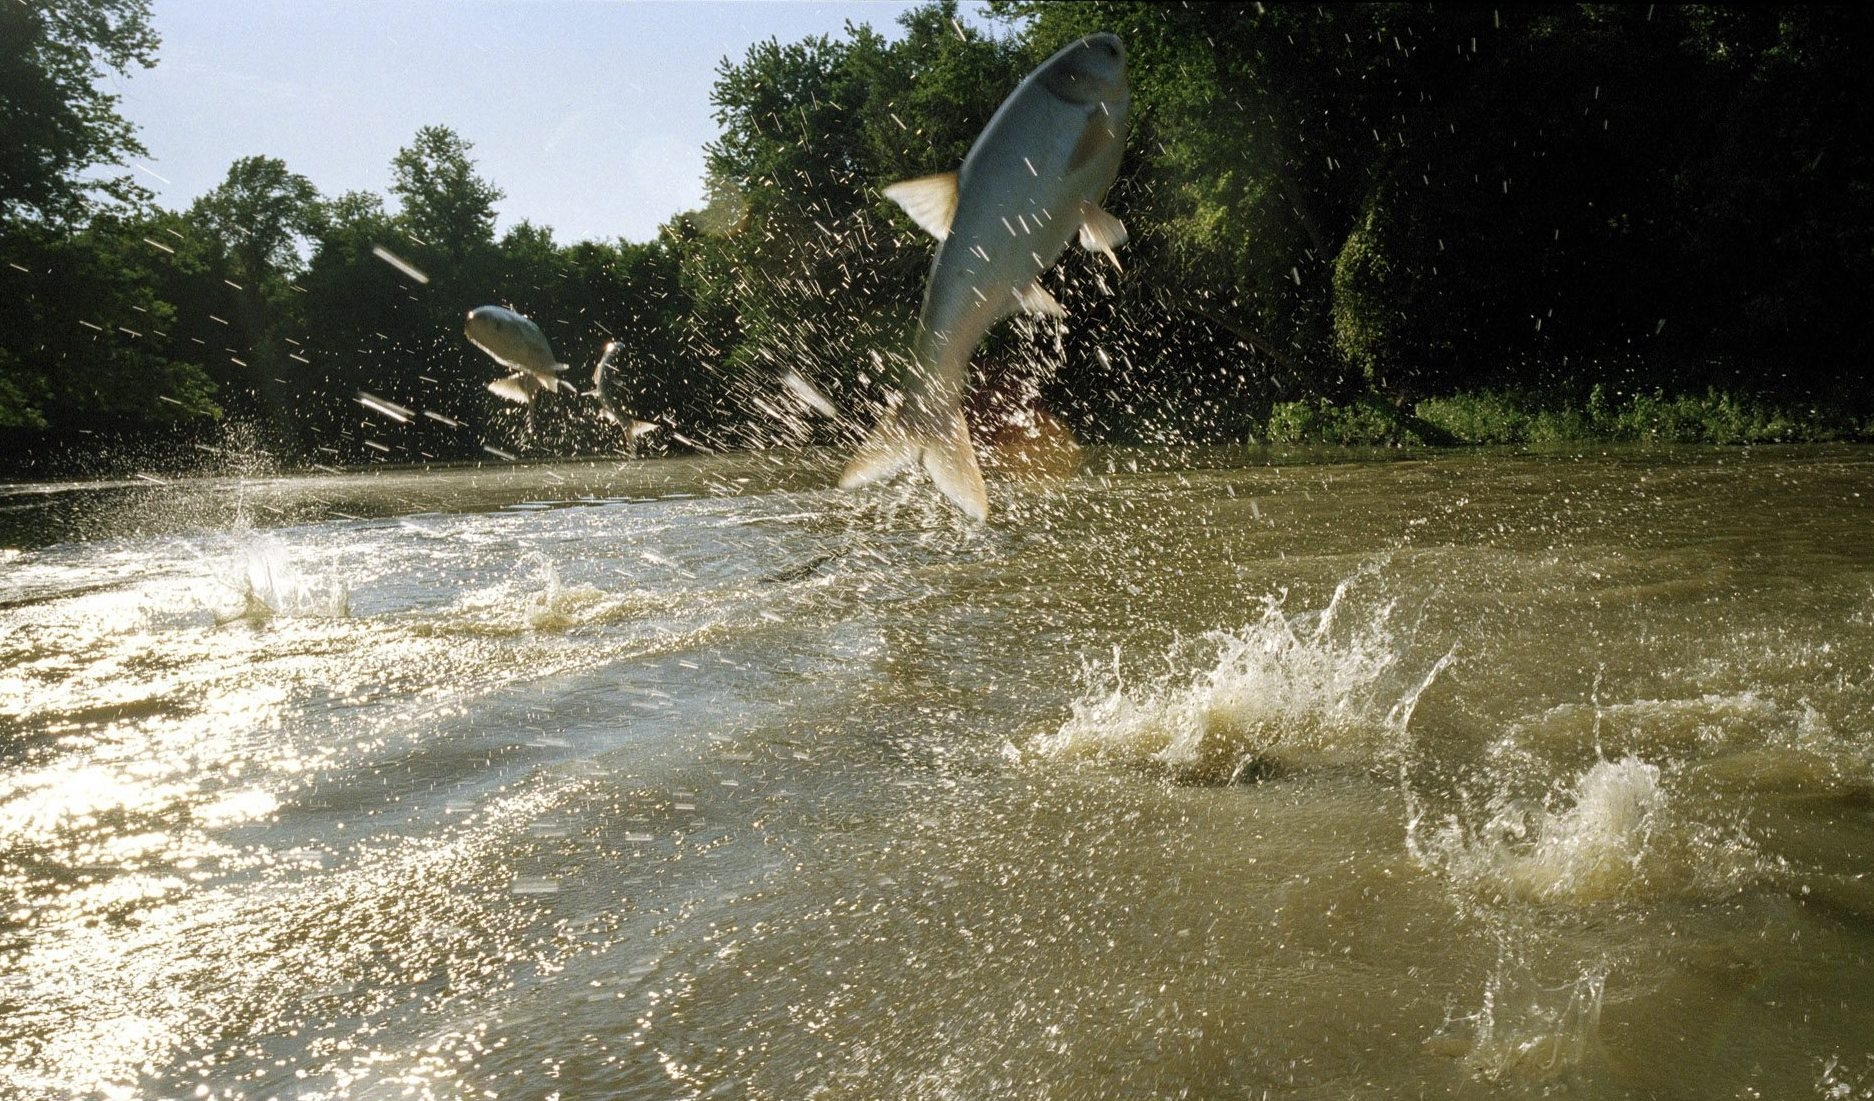 Asian carp jumping out of the Illinois River in Havana, Ill., in 2008.  Since 2013, Asian carp DNA has been found in the Chicago River, less than one city block from Lake Michigan. (New York Times file photo)